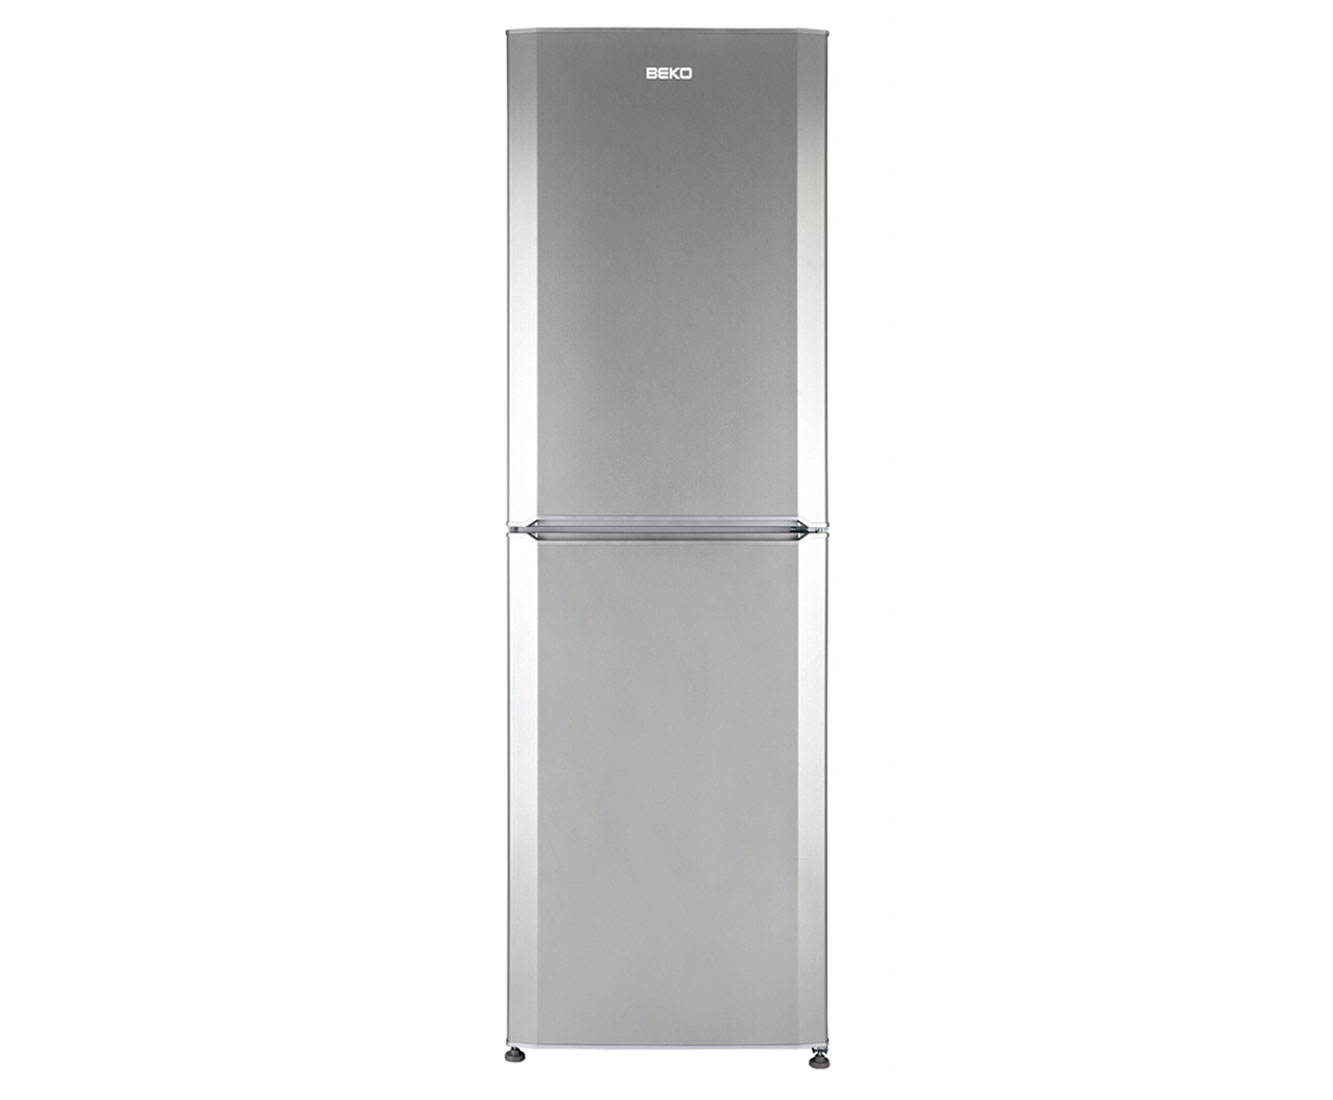 Beko CF6914APS 50/50 Frost Free Fridge Freezer - Silver